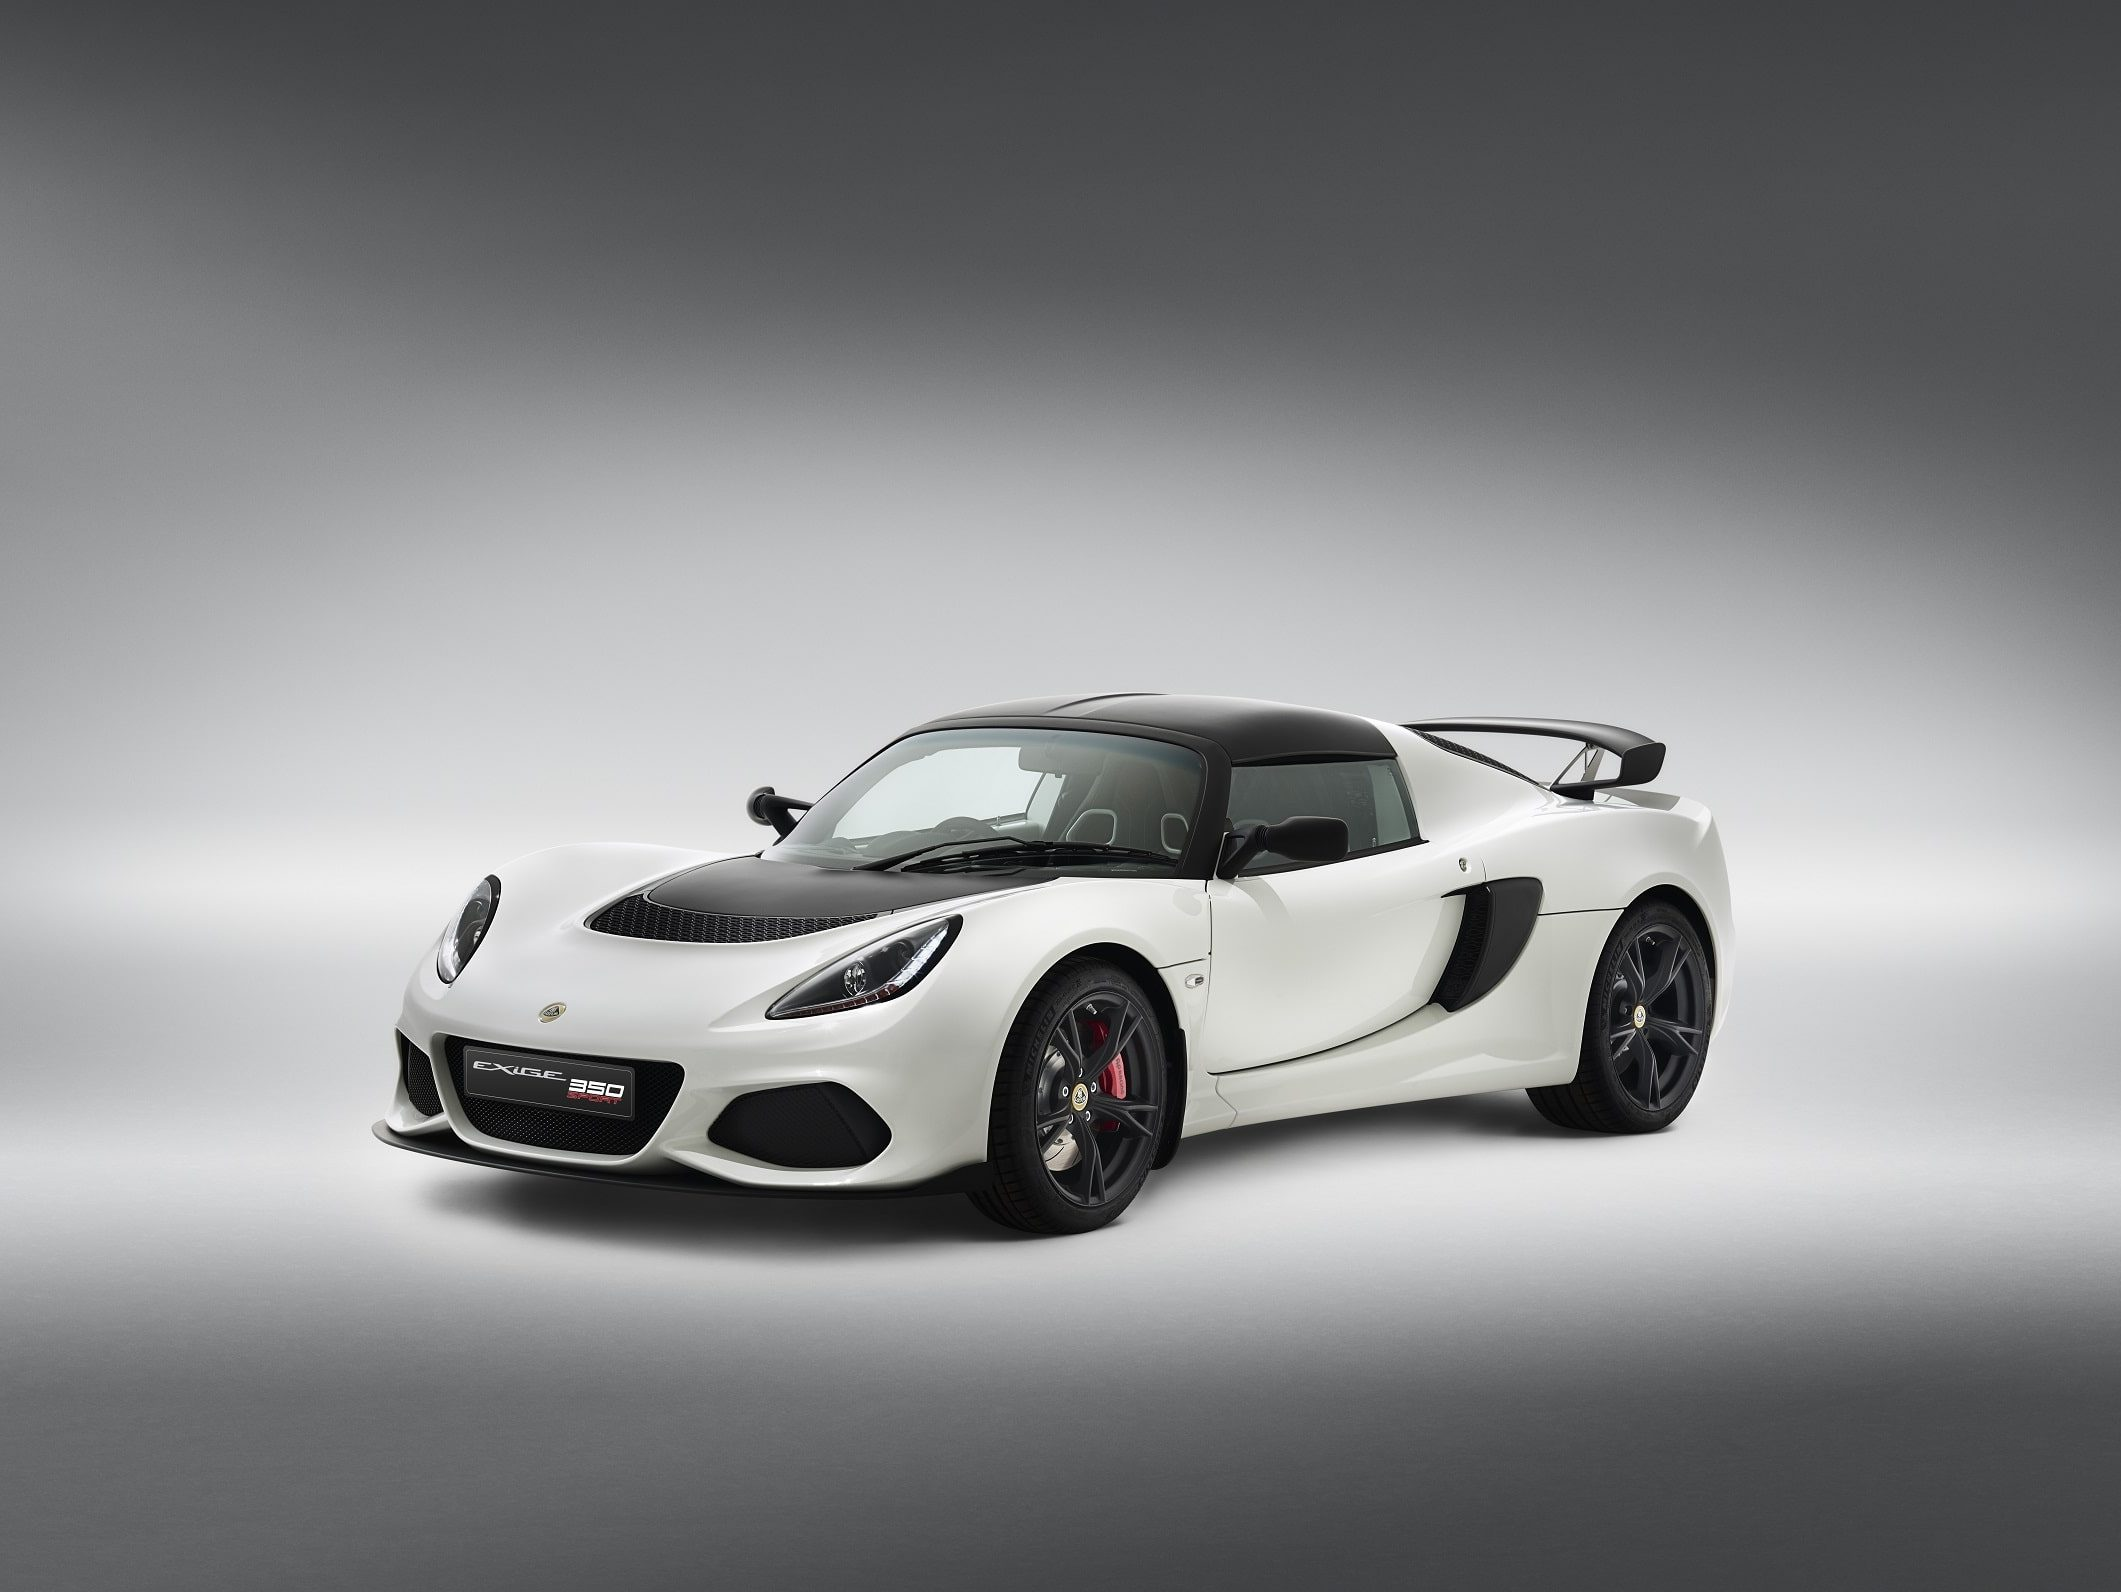 Lotus Exige 430 Cup - Bauden racing cars